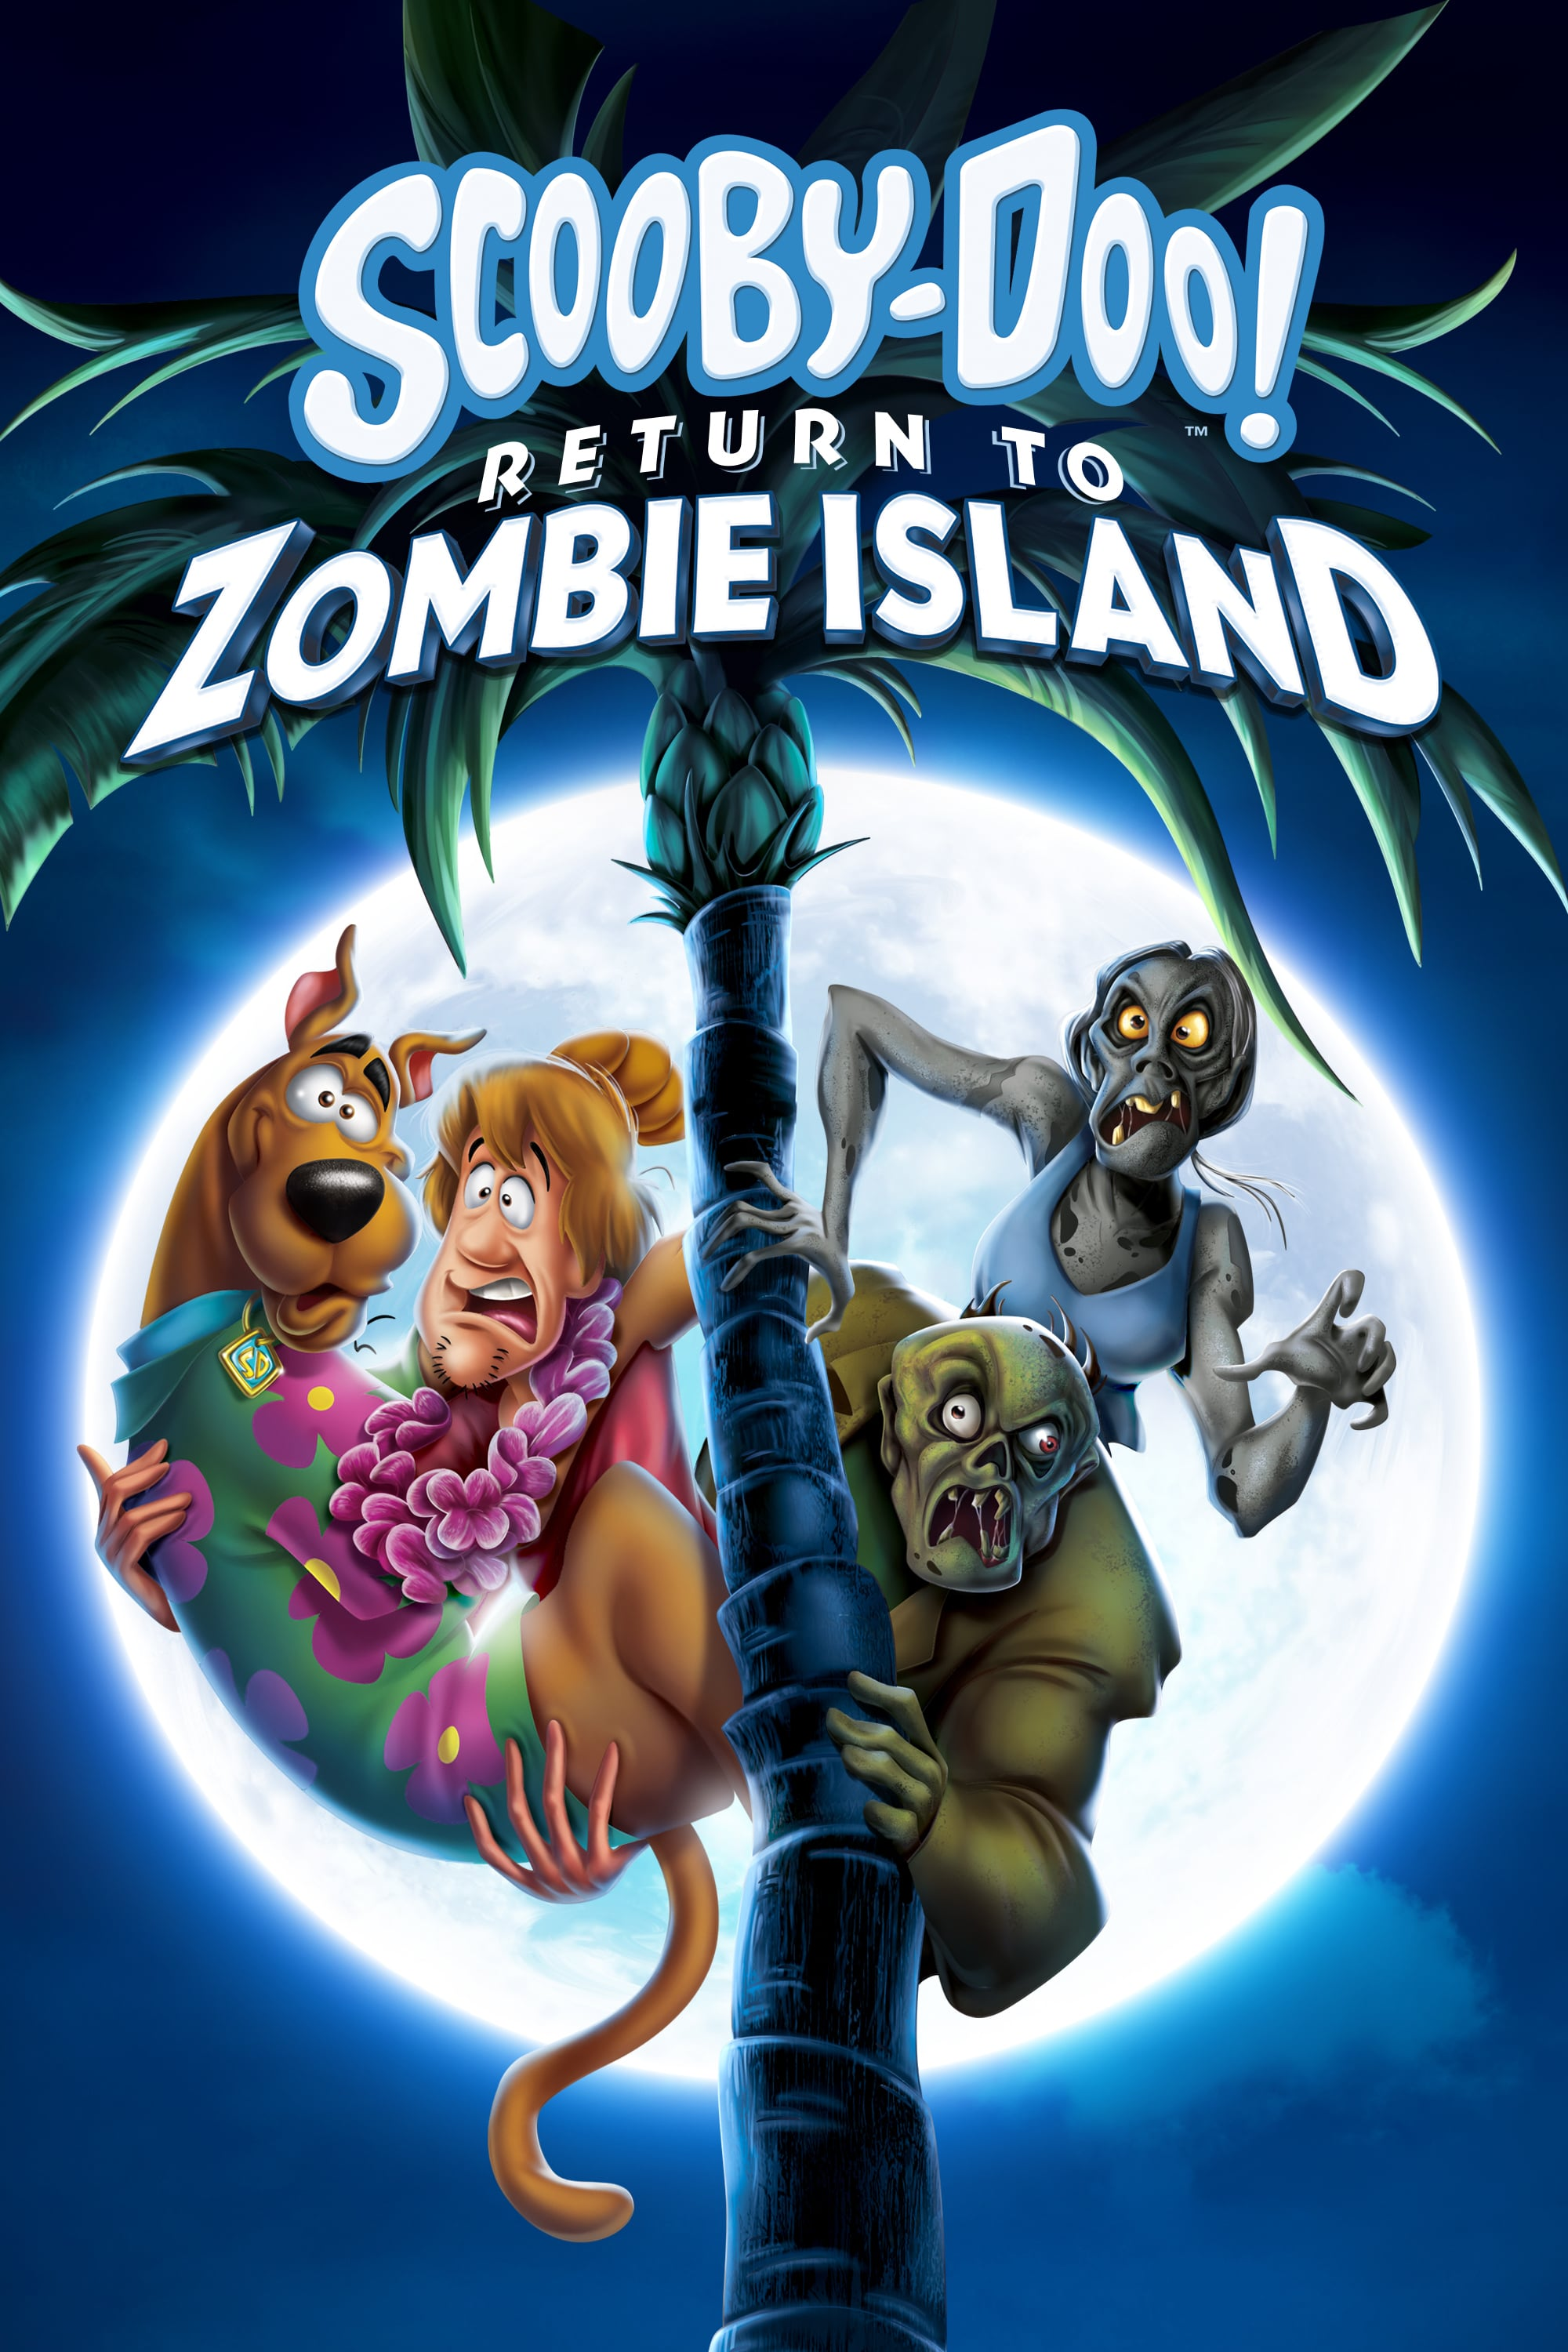 Scooby-Doo-Return-to-Zombie-Island-2019